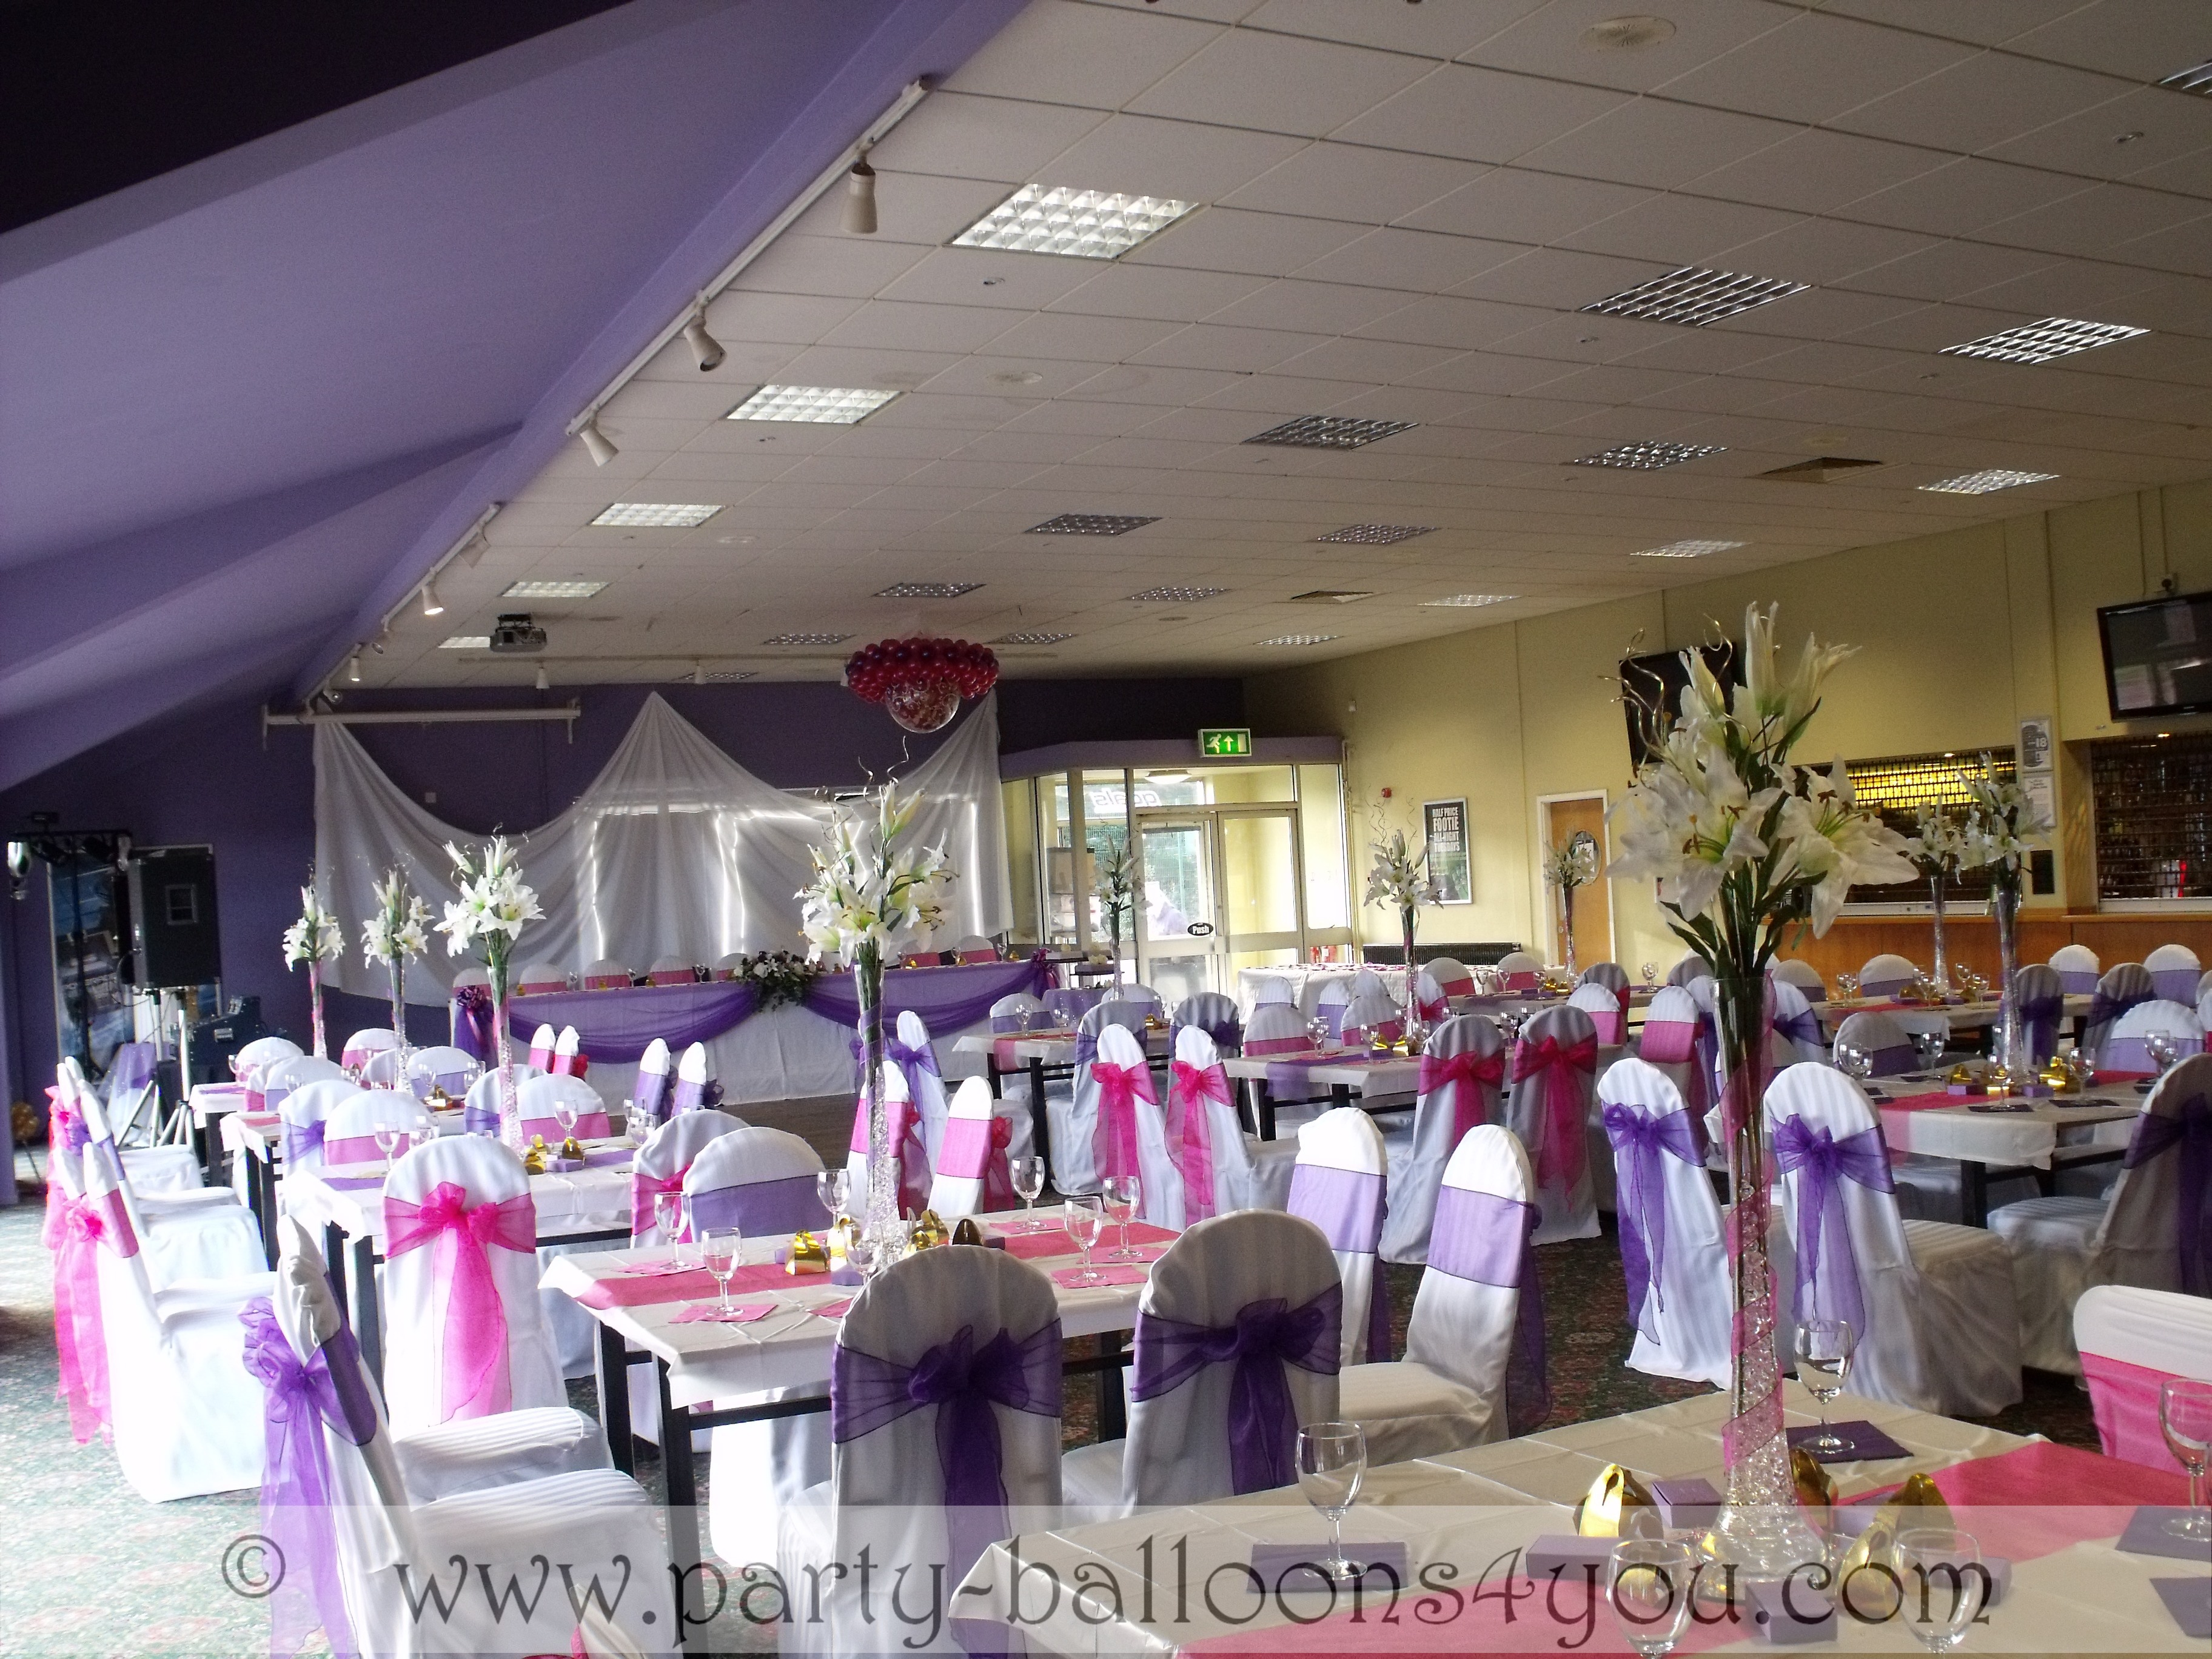 white wedding chair covers hire for desk party balloons 4 you venue decorations done at